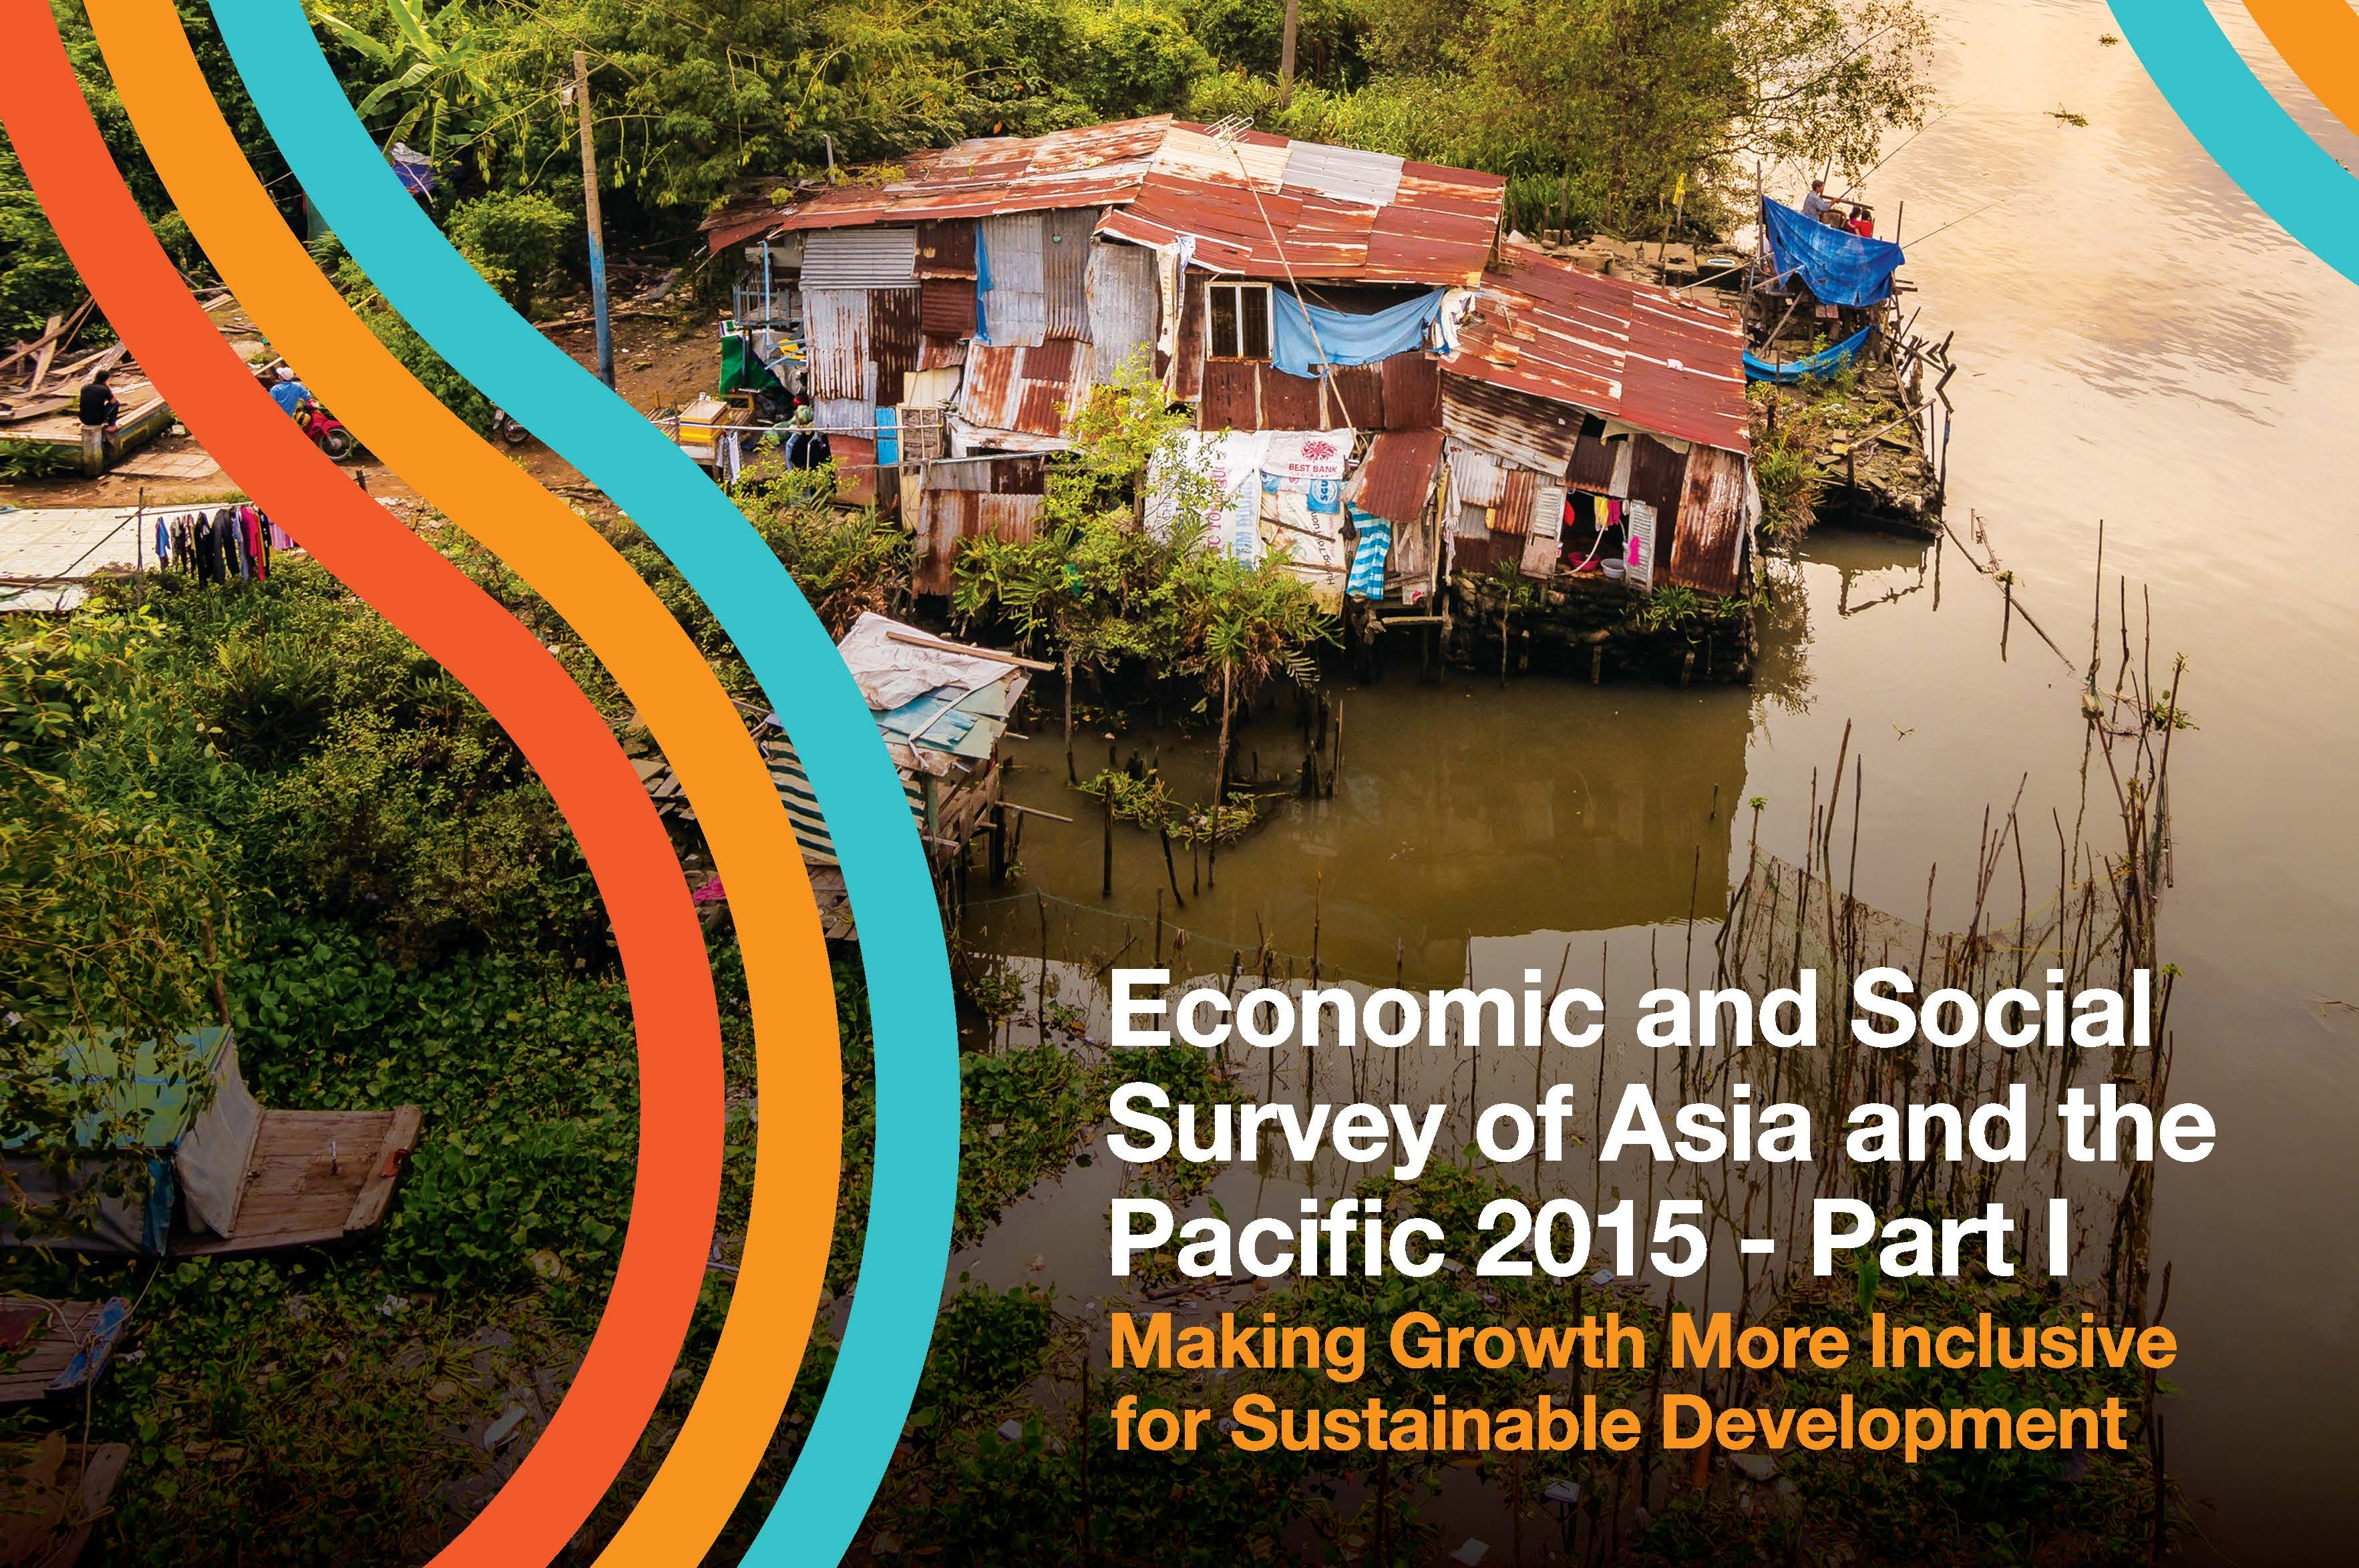 Launch of the Economic and Social Survey of Asia and the Pacific 2015